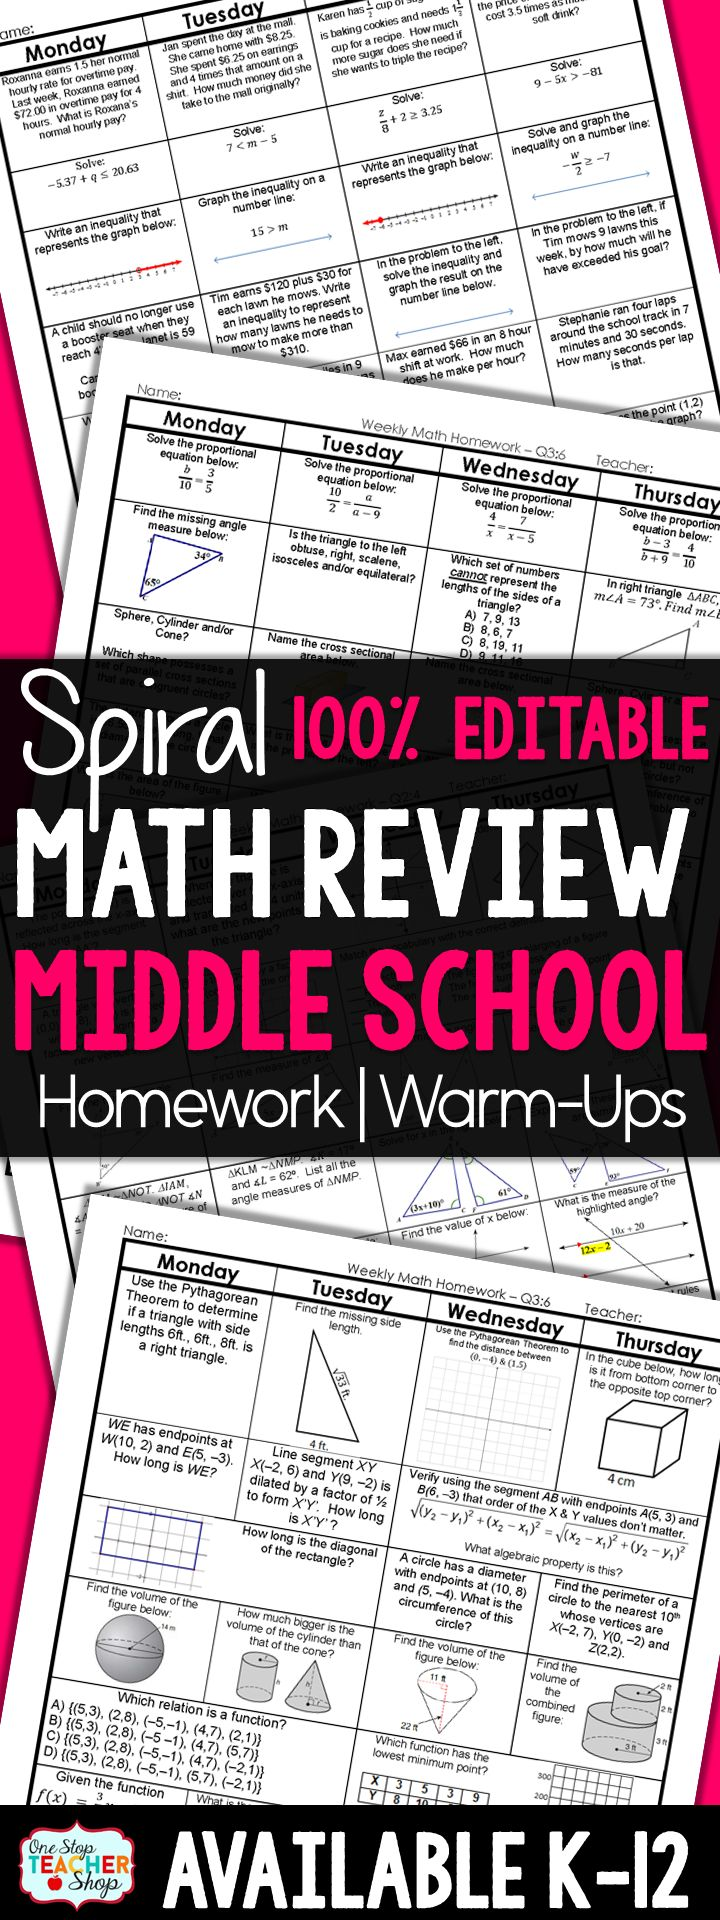 100% Editable Spiral Math Review for Middle School. This daily spiral review resource can be used for math homework, math warm ups, or even math centers. It is 100% Editable and covers the entire year of sixth, seventh, or eighth grade math. Includes answer keys!